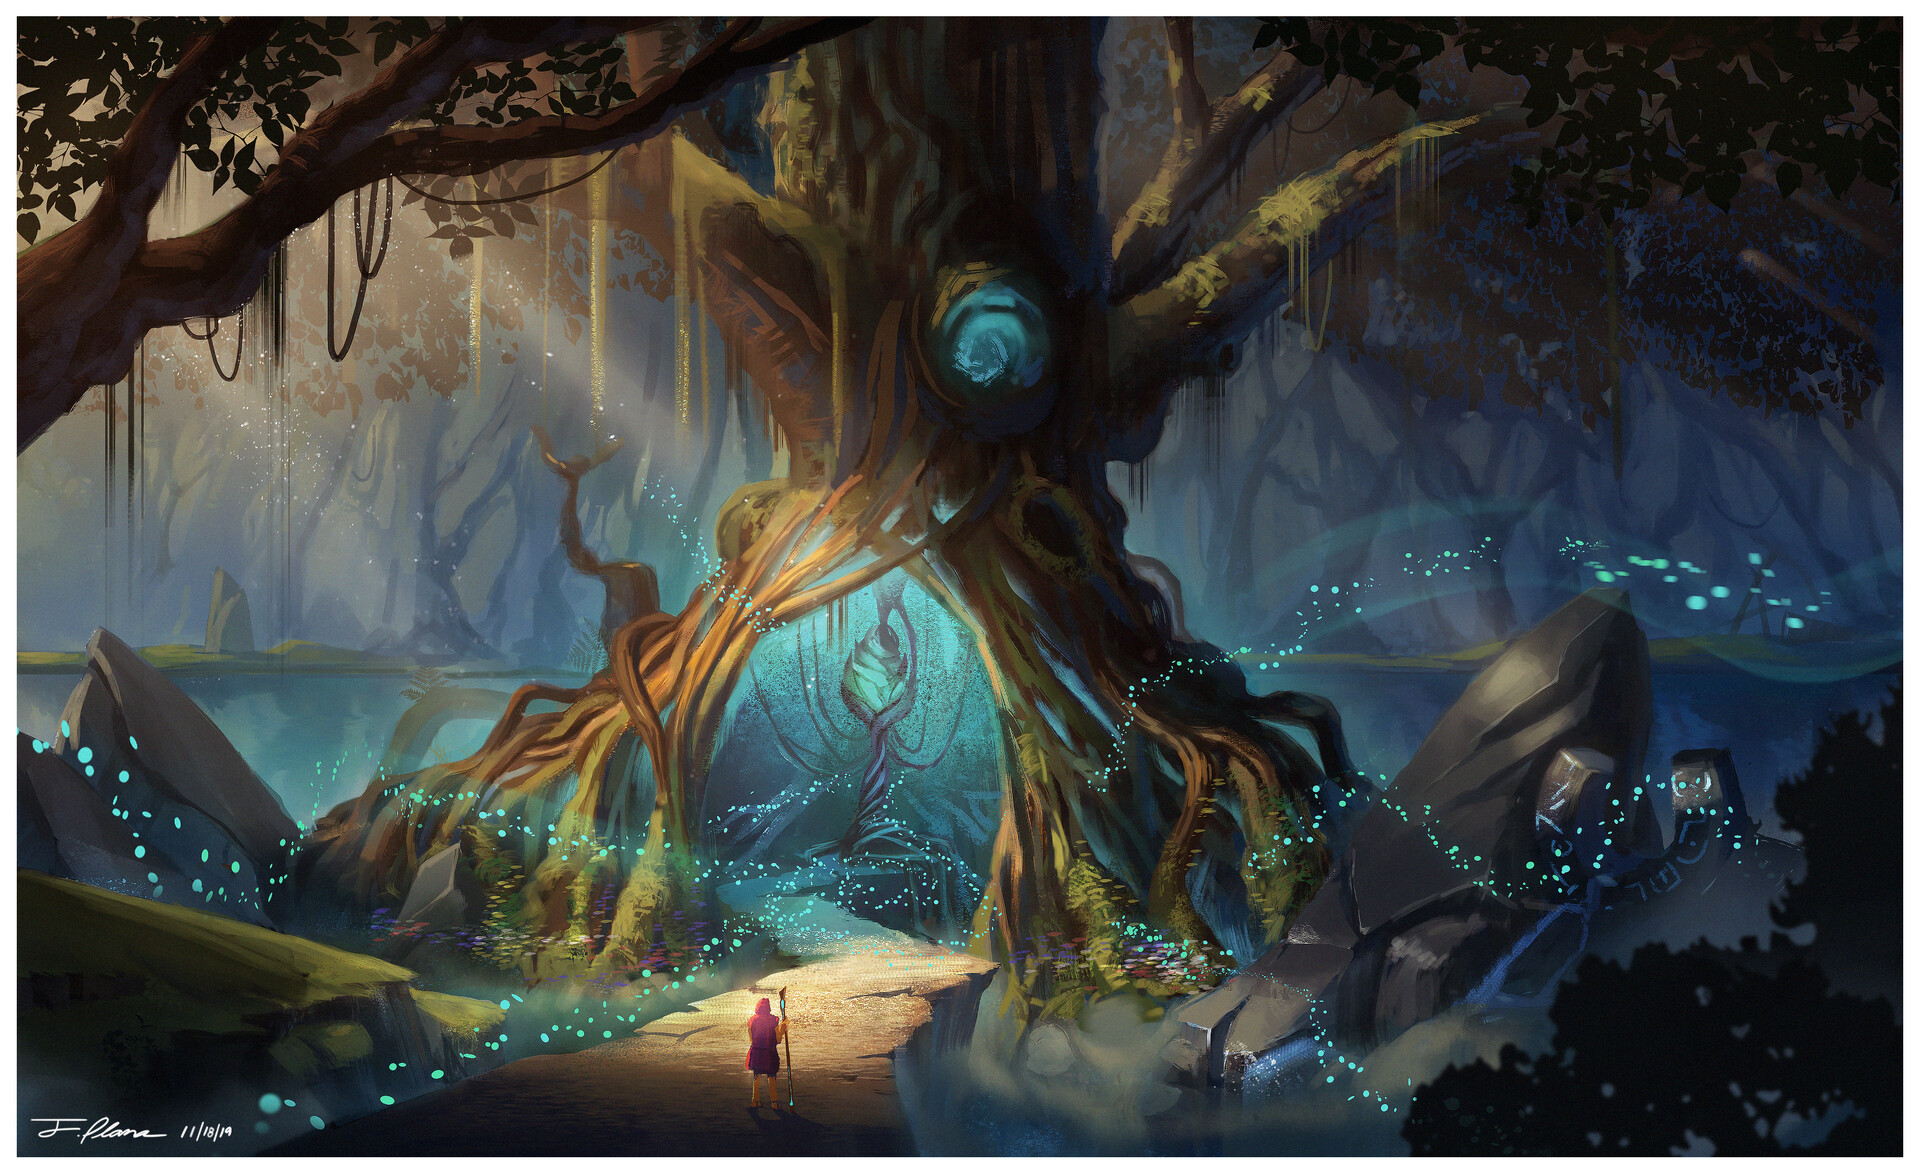 2D Artwork of a glowing magical tree